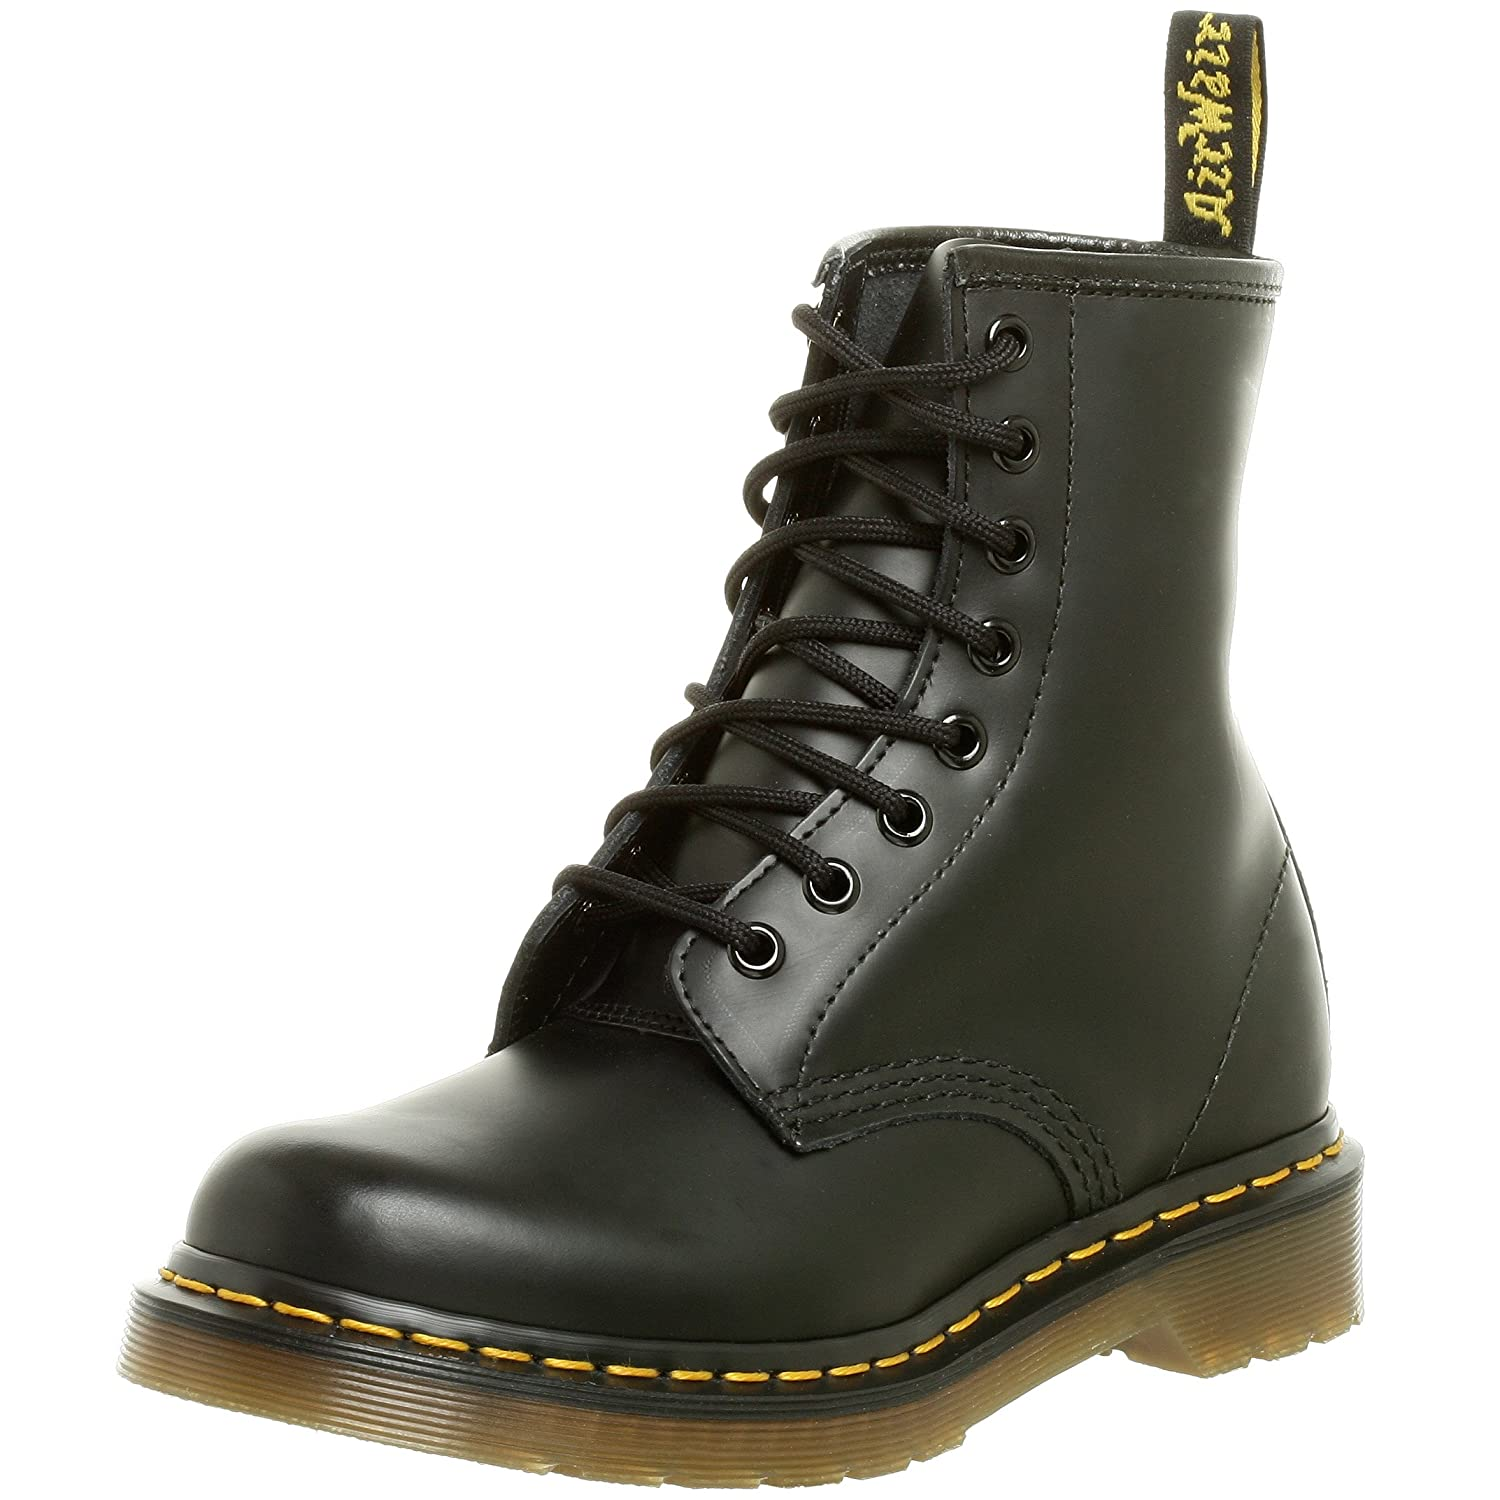 Dr. Martens Women's 1460 Re-Invented Victorian Print Lace Up Boot B000W3WITG 11 M US/ 9 UK|Black Smooth Leather